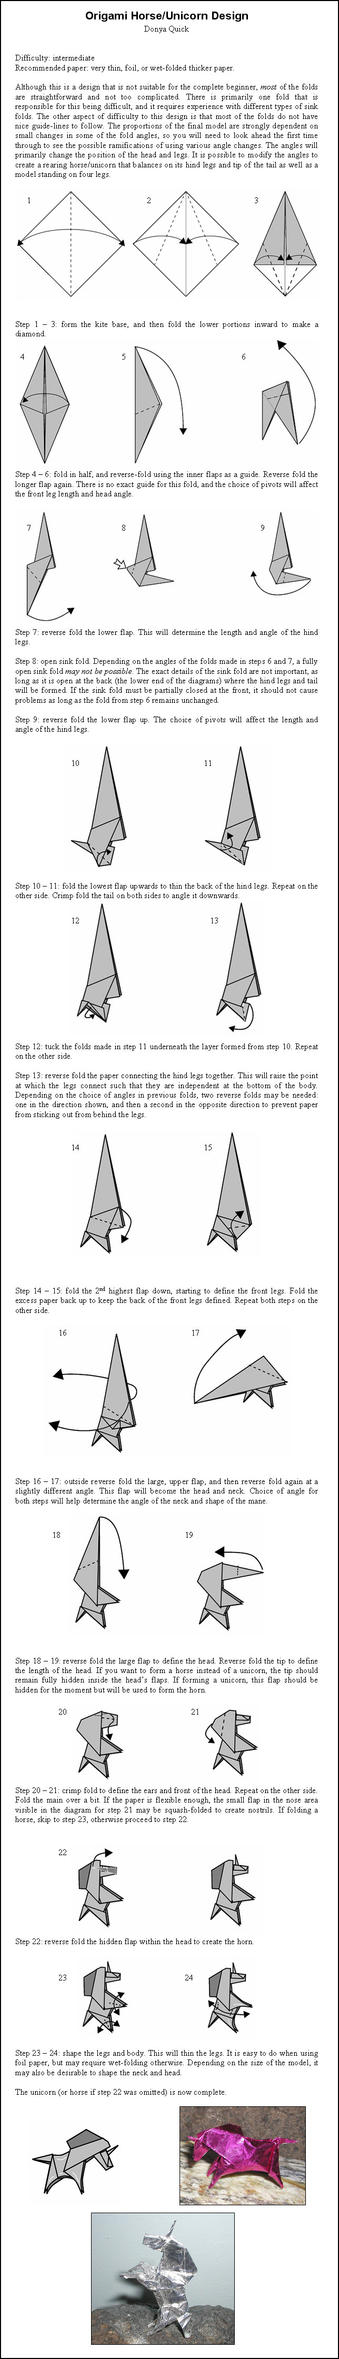 Origami explore origami on deviantart for Net making instructions